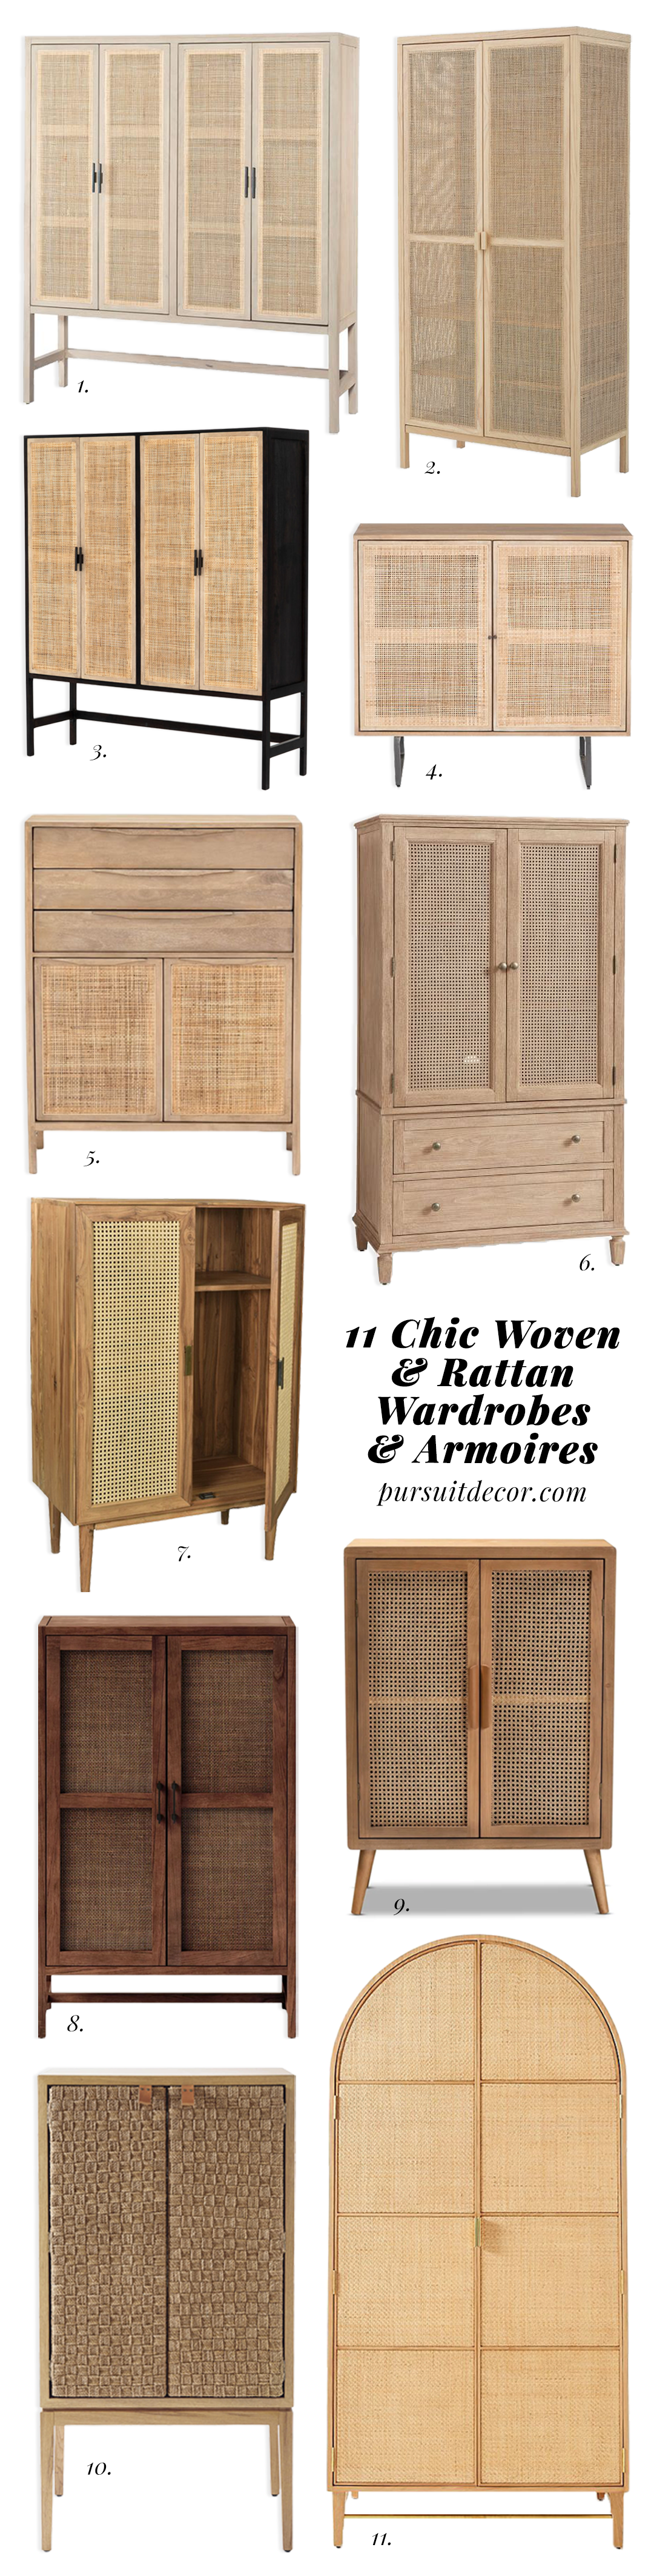 ROUND-UP: 11 Chic Woven and Rattan Wardrobes and Armoires - Pursuit Decor